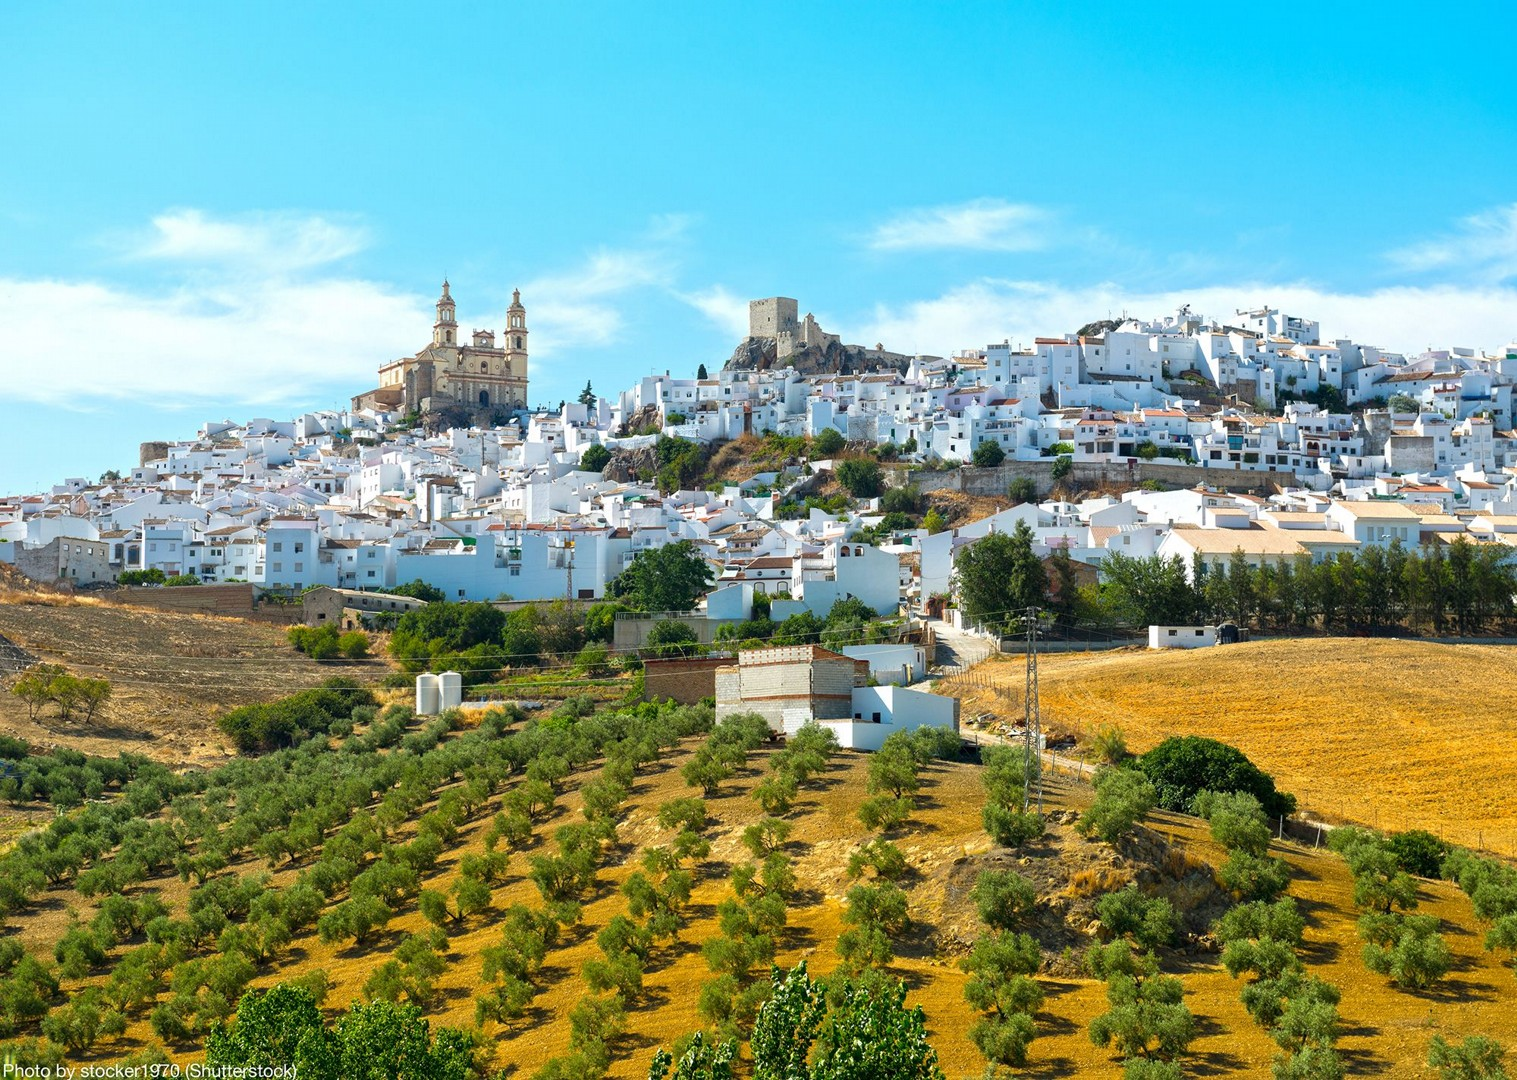 By stocker1970 shutterstock_681175240.jpg - Spain - Andalucia - White Villages to the Ocean - Leisure Cycling